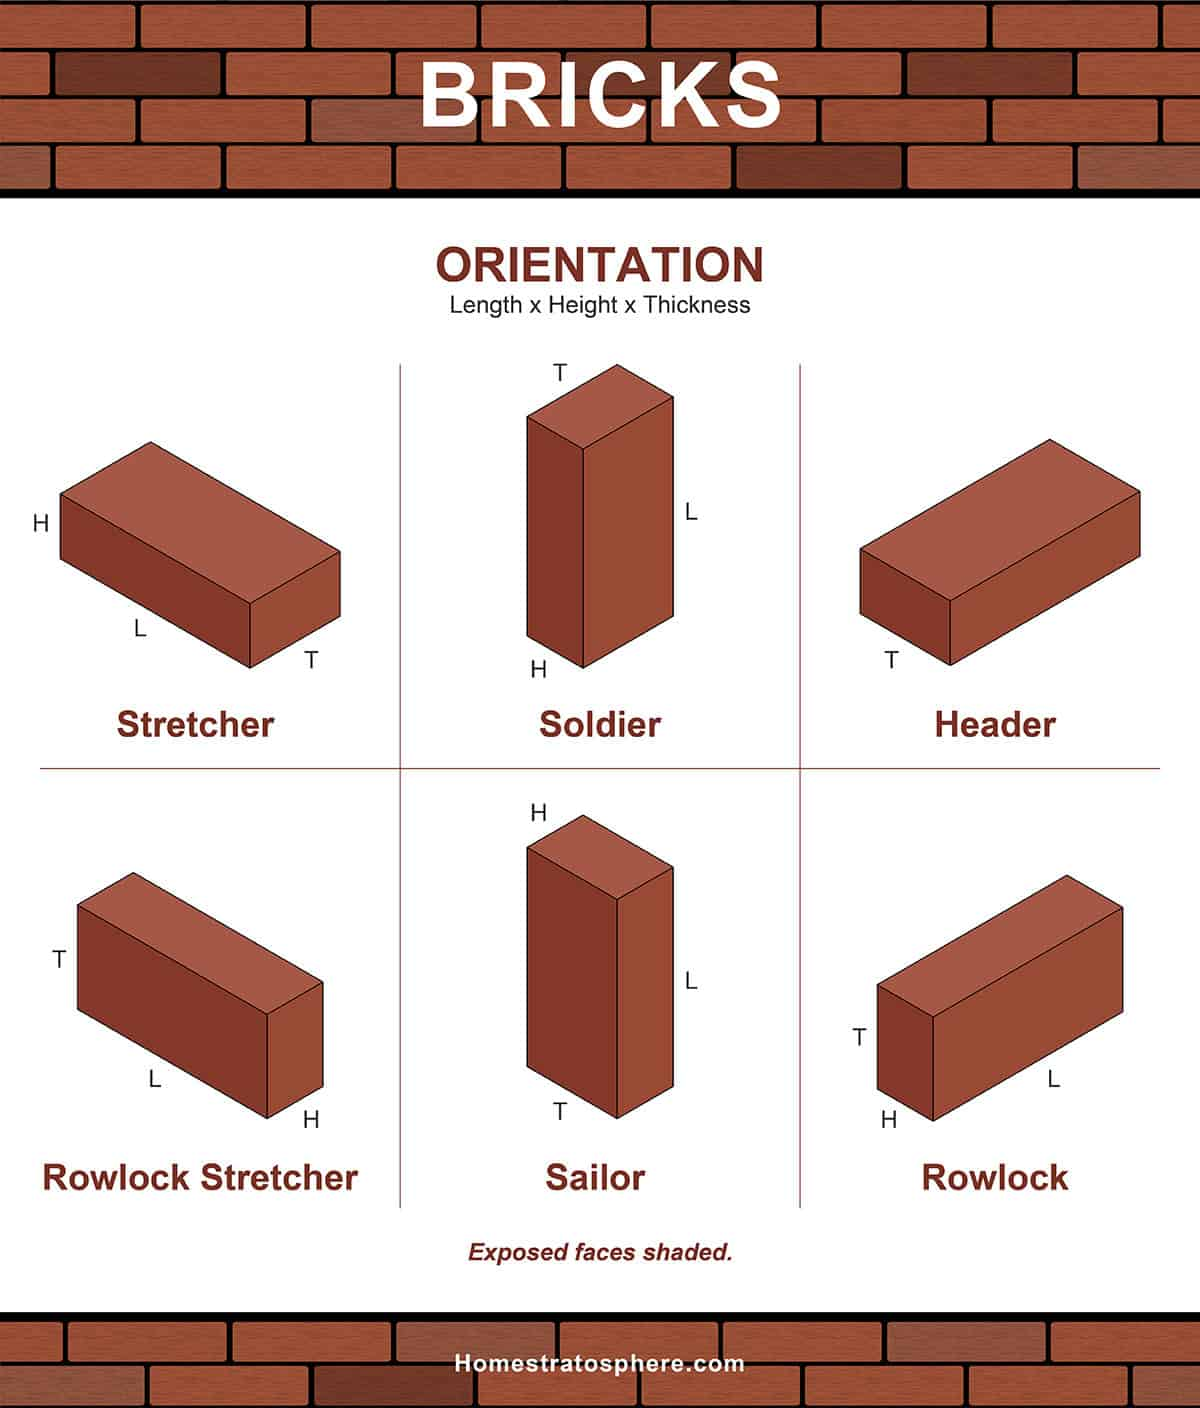 Brick type by orientation